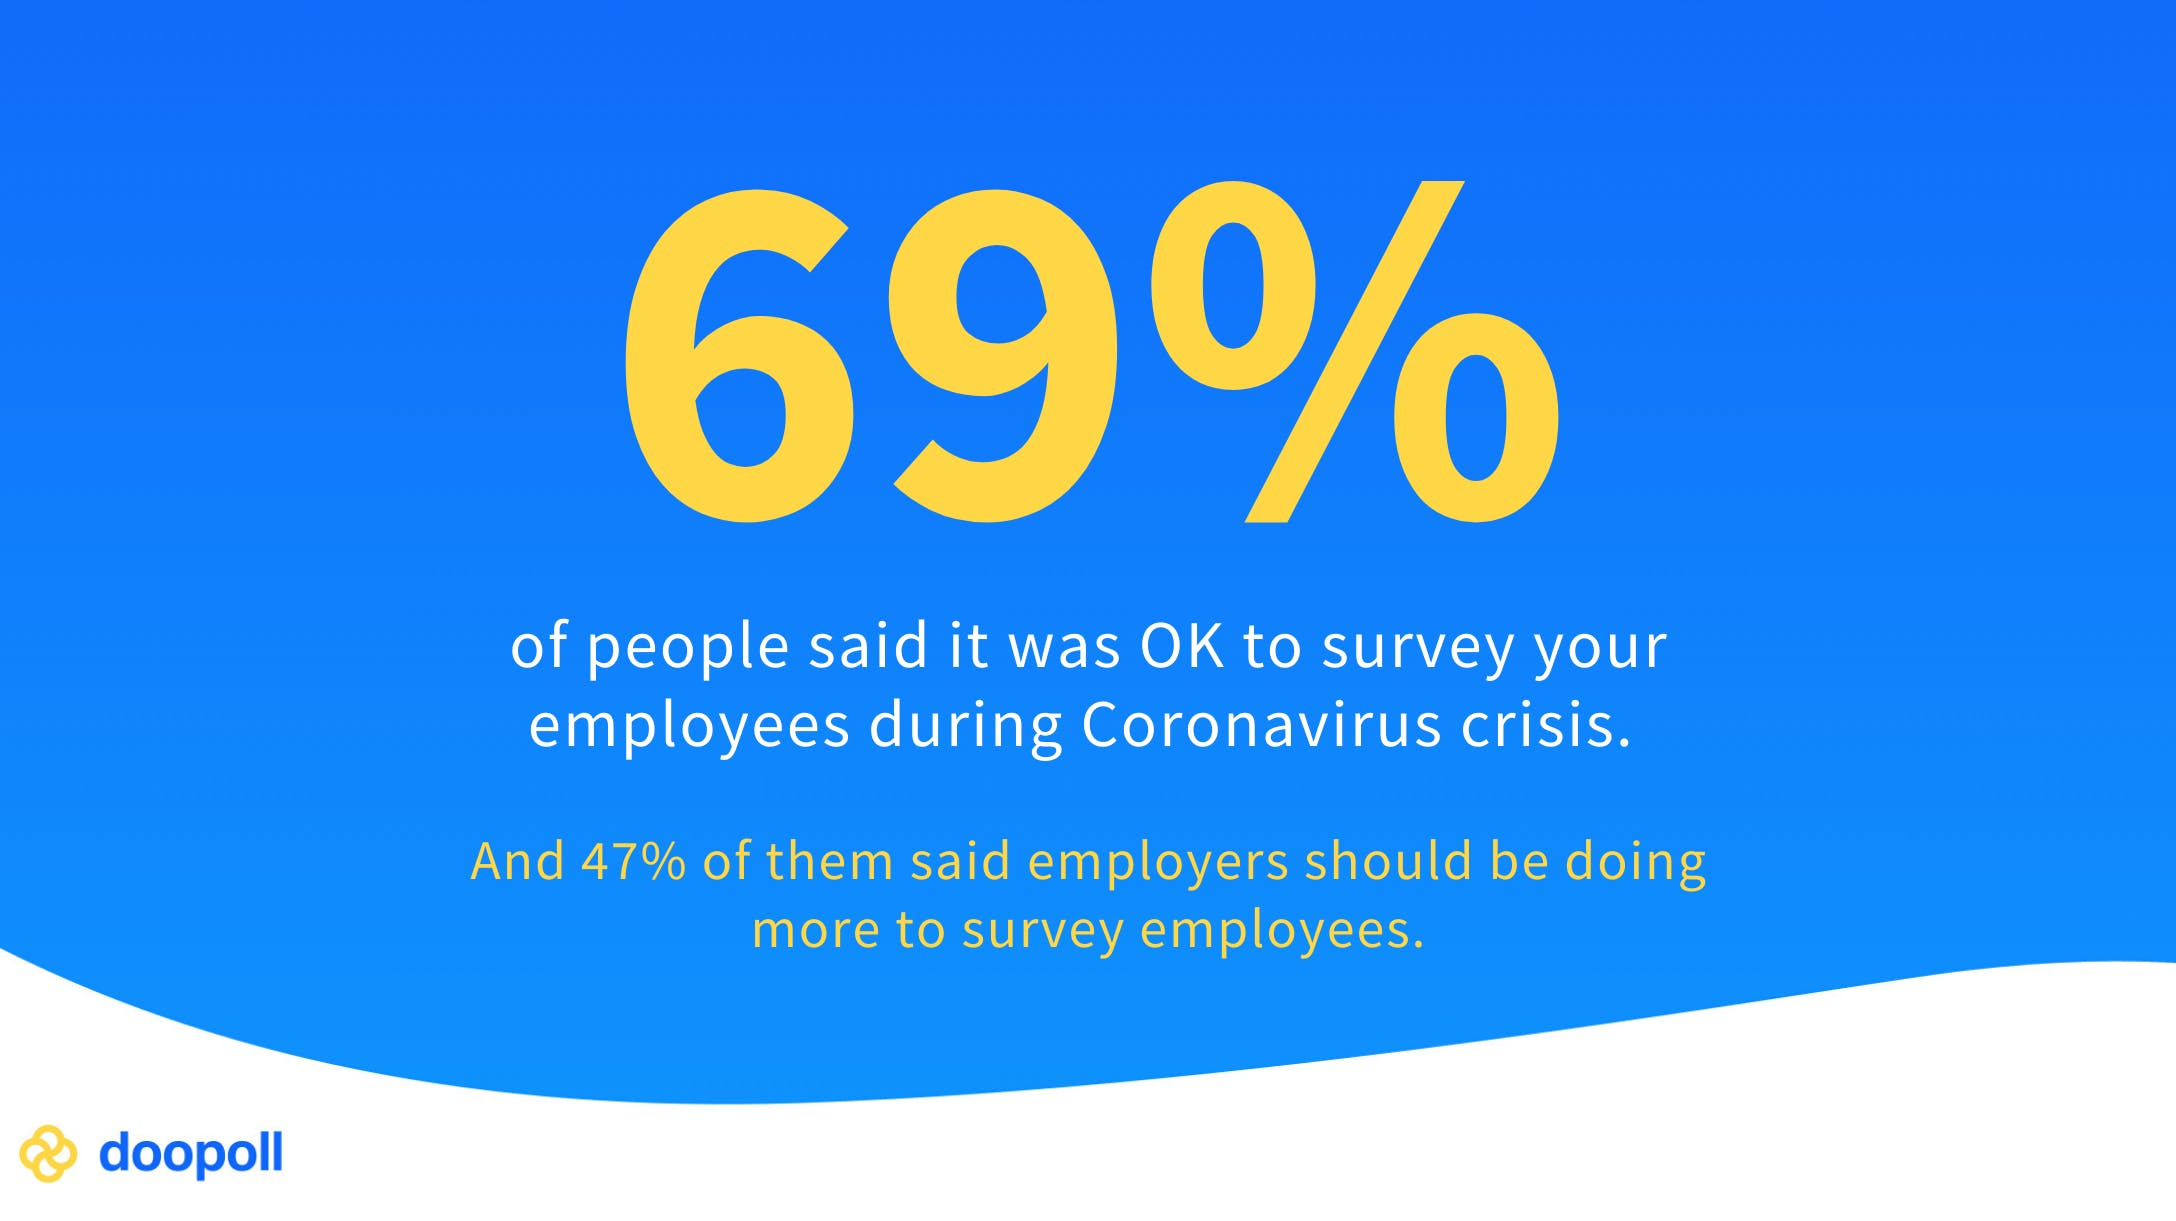 69% of people said it was OK to survey employees